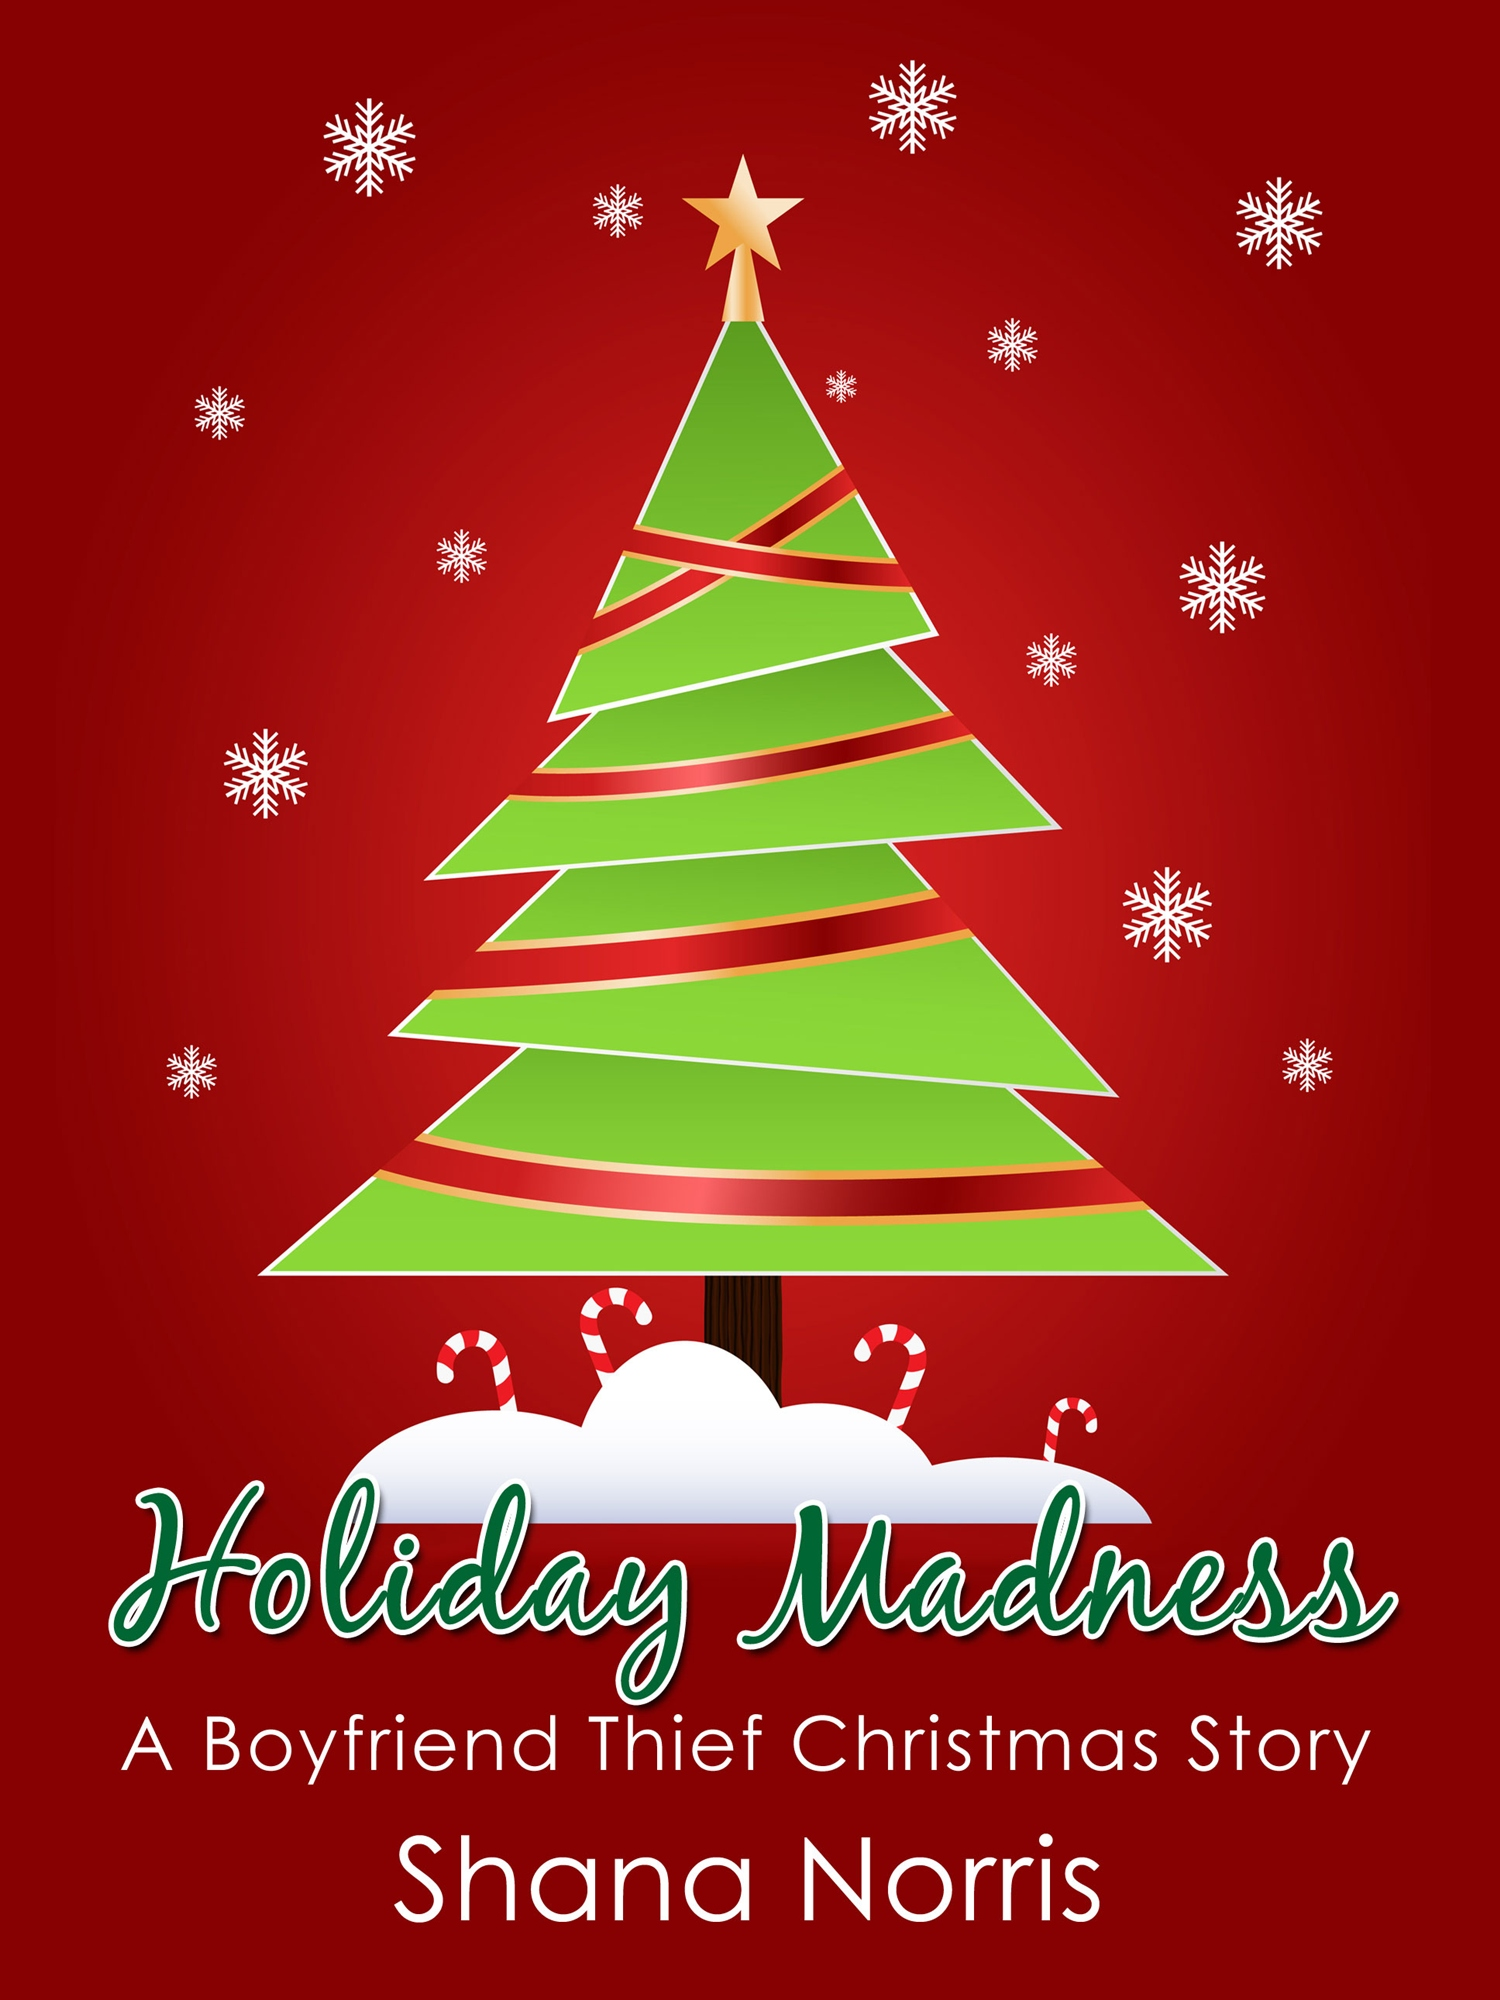 Holiday Madness: A Boyfriend Thief Christmas Story